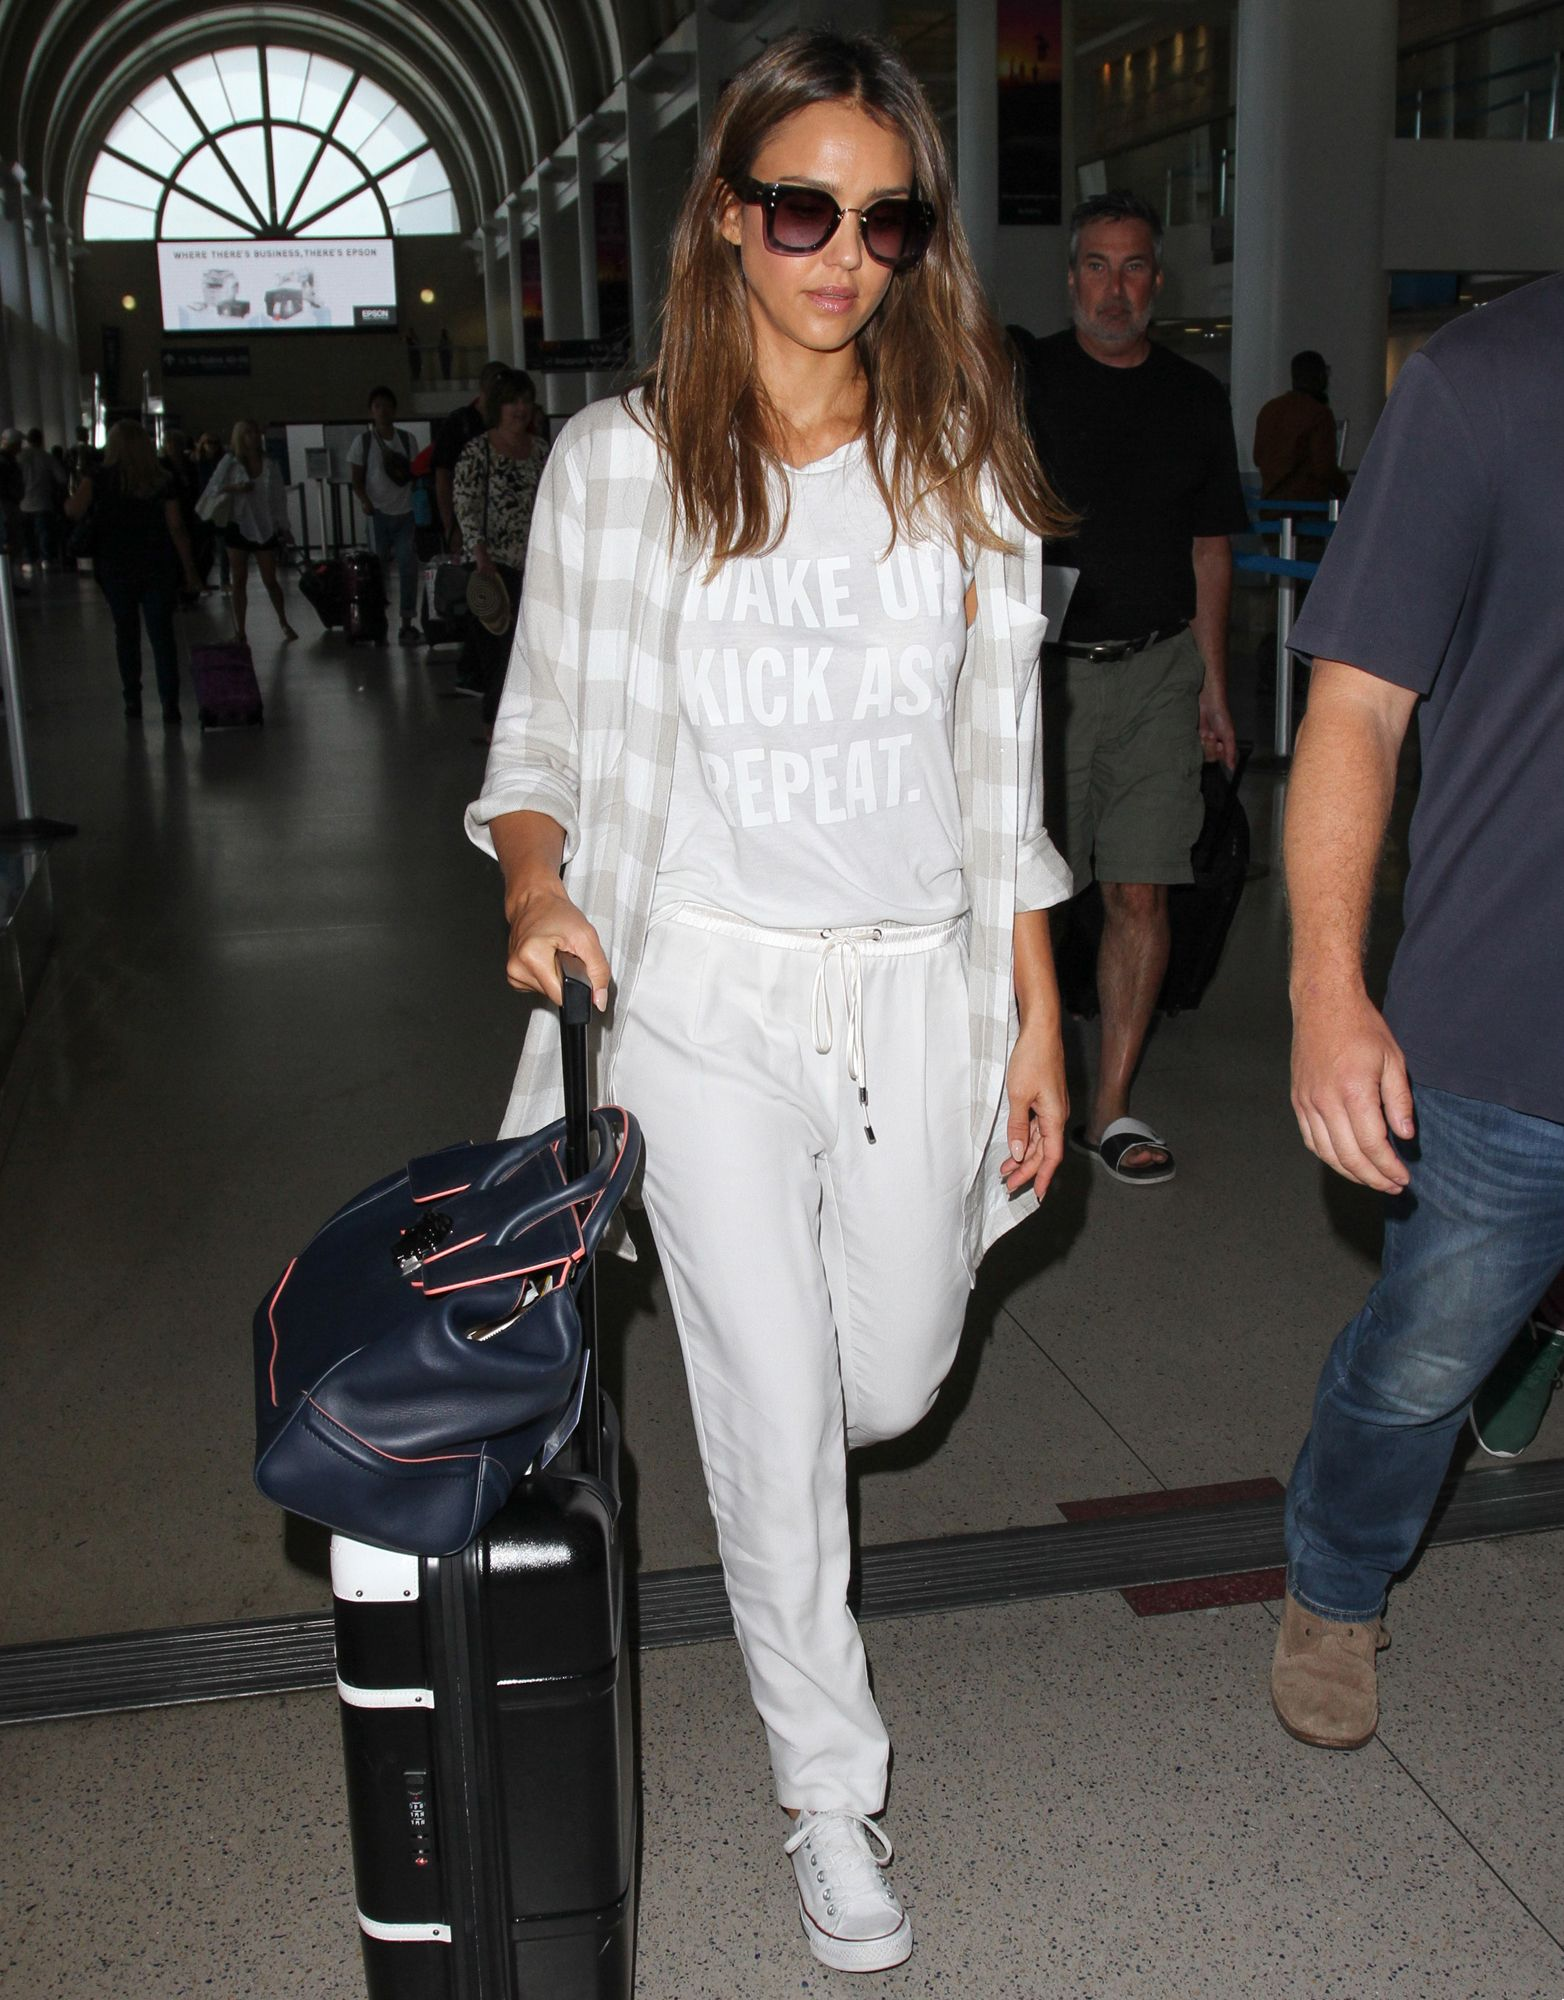 Image result for jessica alba in the airport